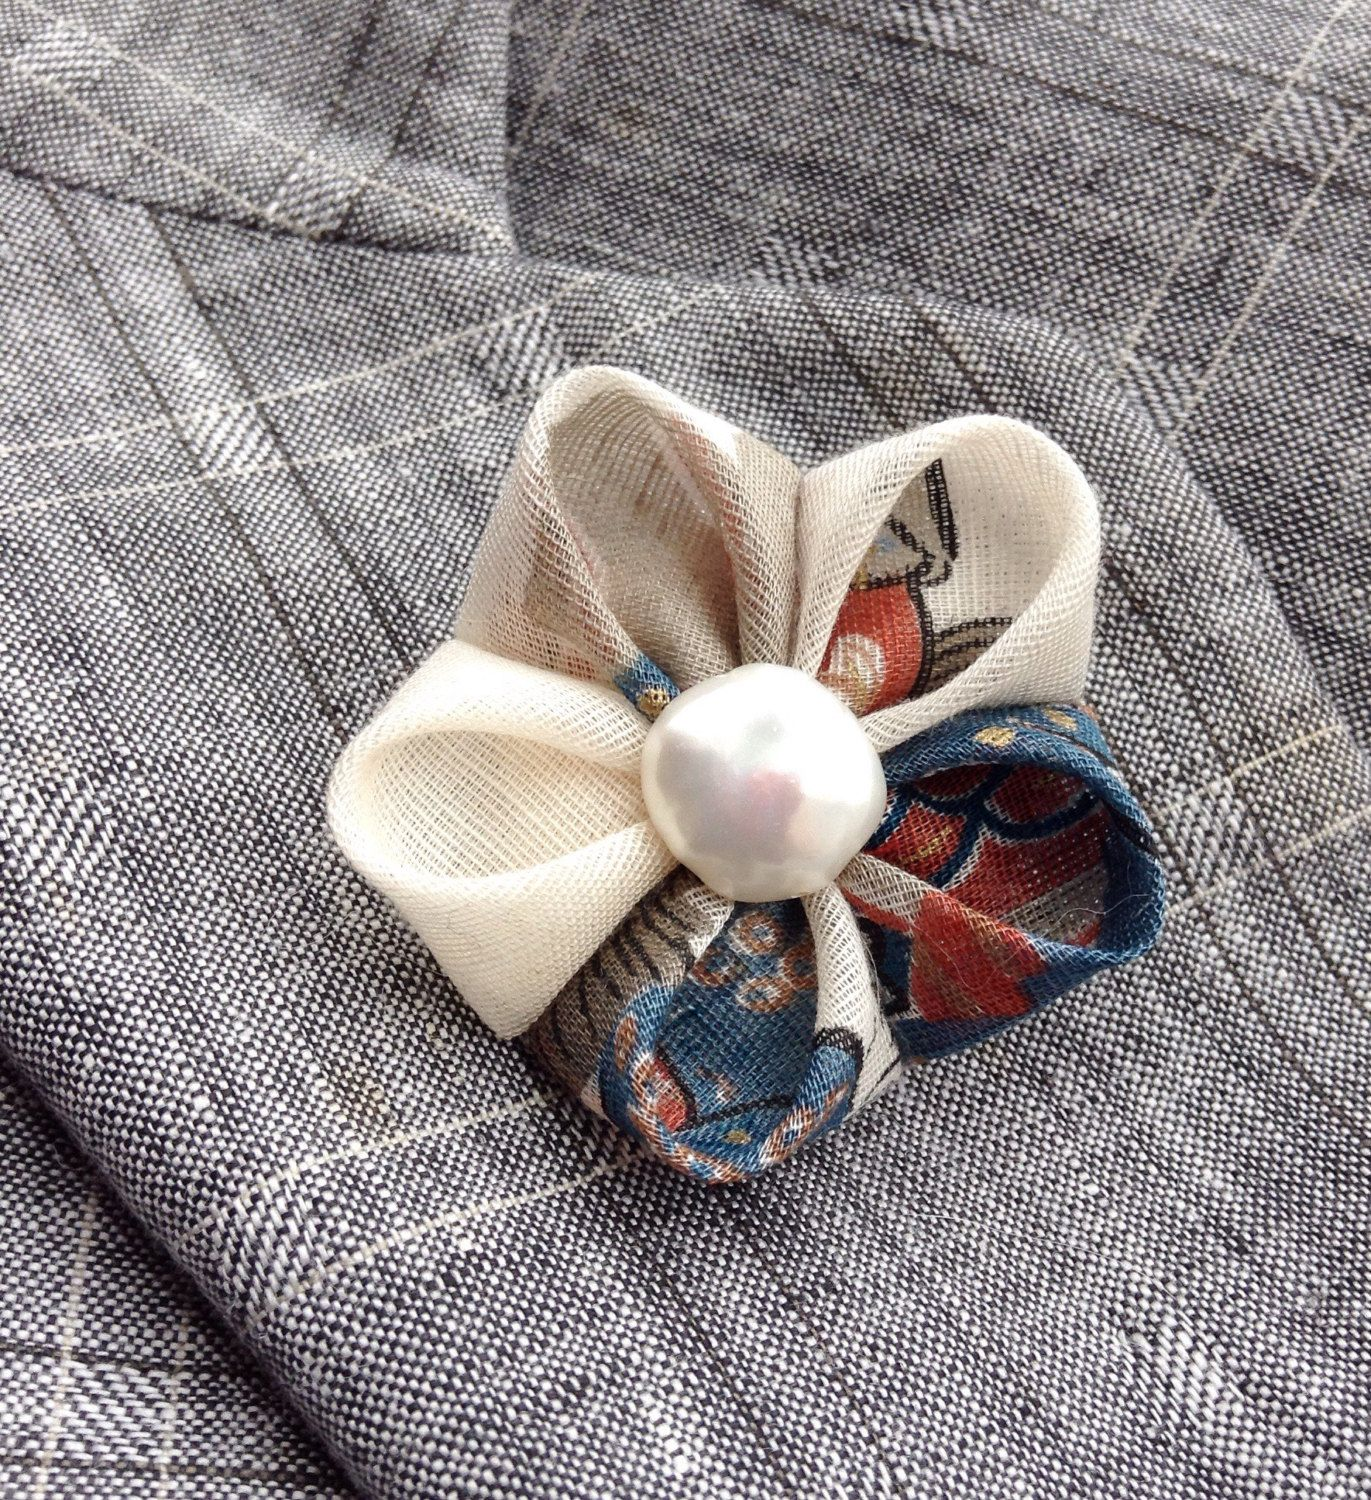 A fall colors lapel flower boutonniere pin for modern guys, made in the Japanese tsumami kanzashi style! These attention-grabbing pins are all slightly different, and are the day to night mens fashion accessory no one else can own. I used a vintage Japanese linen to make this whimsical lapel pin. I attached a coin pearl to the center, and mounted everything on a tie tack with a butterfly clutch back. The modeled photo is an earlier version. Complements a suit, blazer, overcoat, hat…